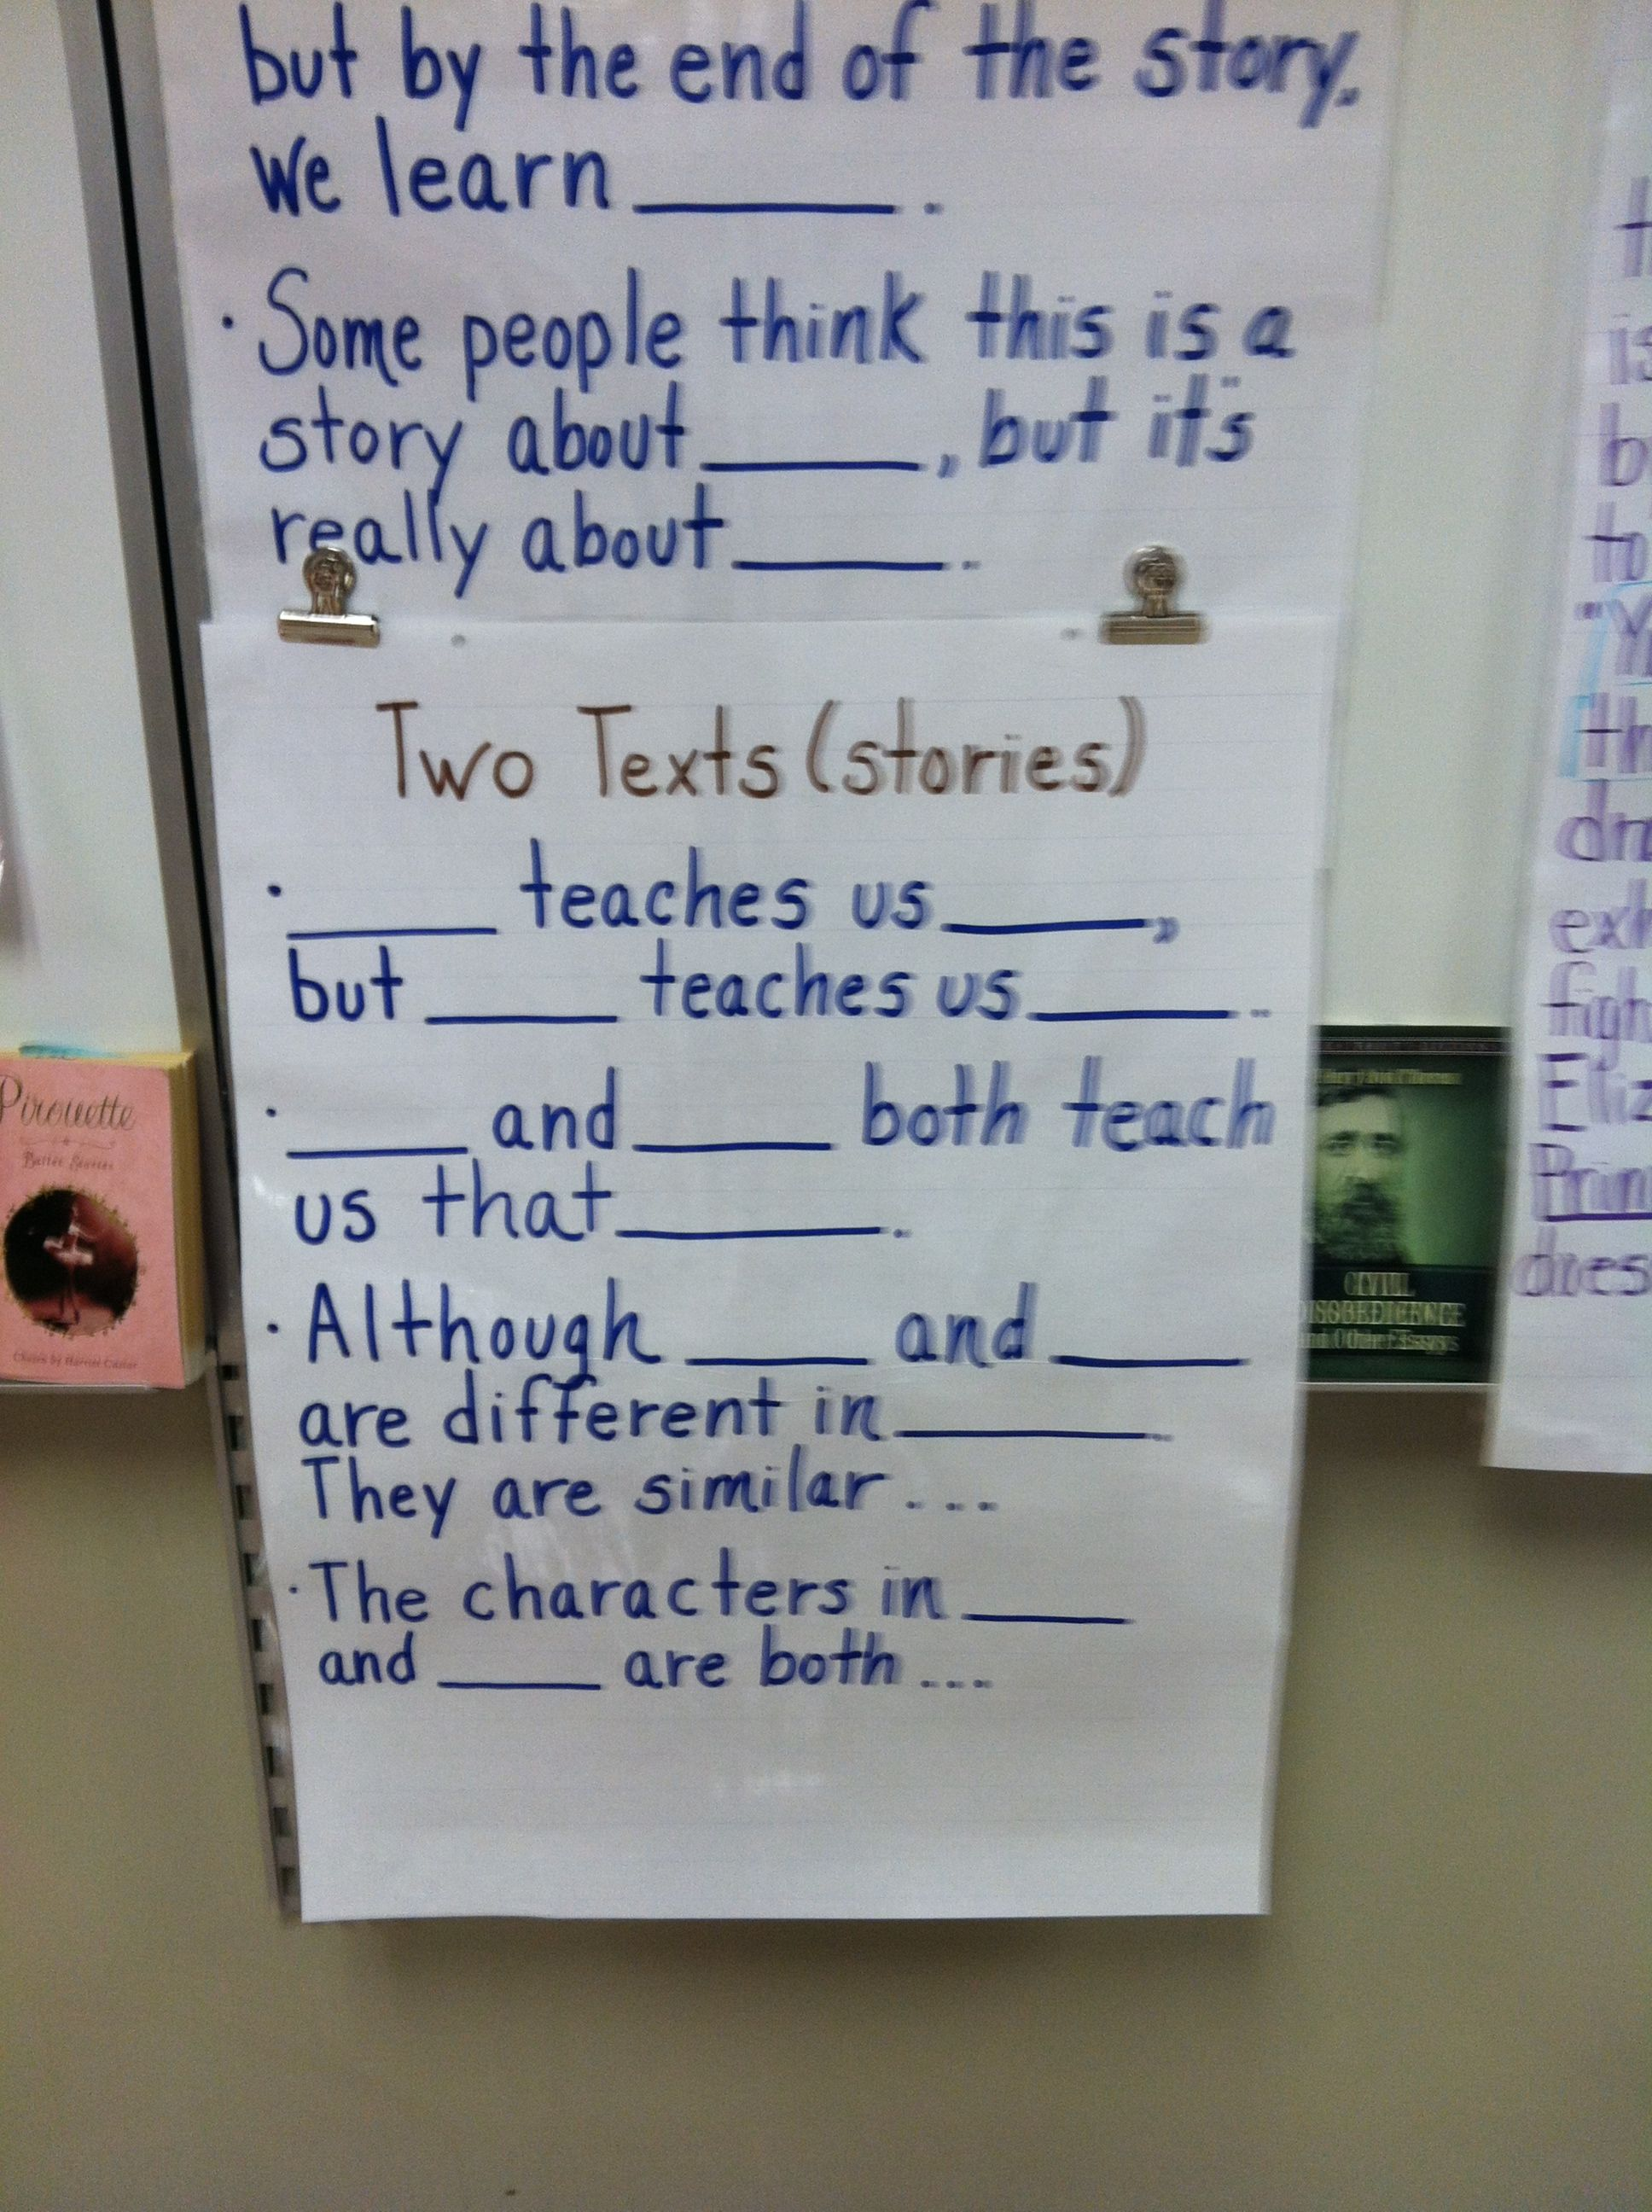 best images about literary essay unit anchor charts on 17 best images about literary essay unit anchor charts student anchor charts and texts